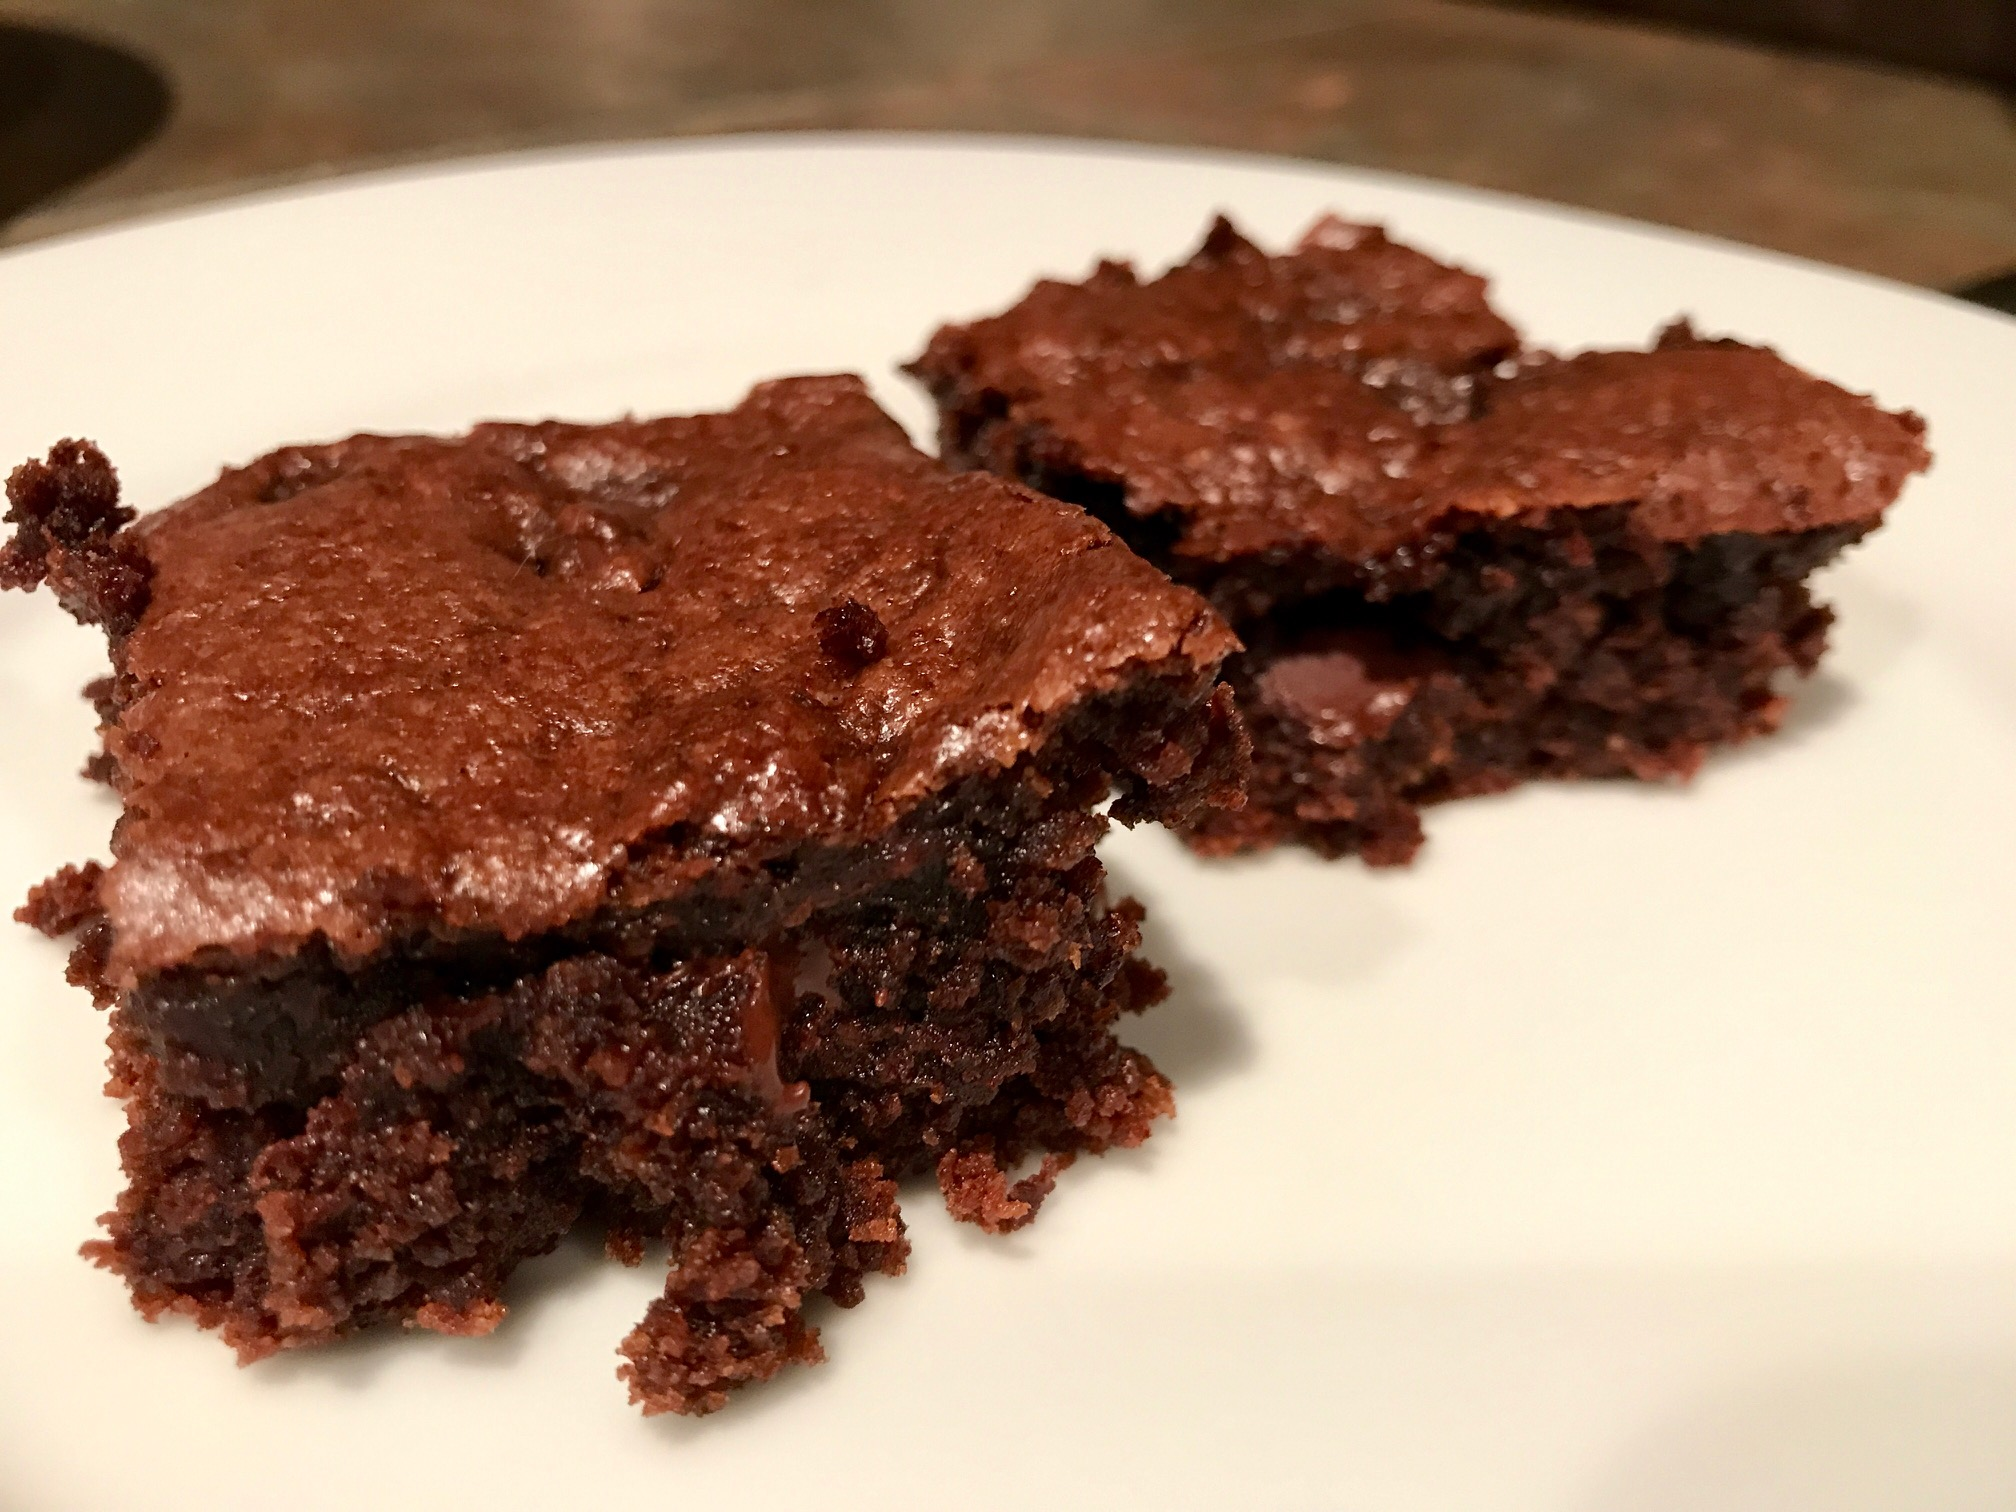 Tahini Brownies...delicious, easy brownie recipe made with tahini (sesame seed paste), can easily be made gluten-free, dairy-free, etc. | Tahini is a food used frequently in Middle Eastern cuisine in both sweet & savory ways. Easy brownie recipes, gluten-free desserts. #brownies #tahini #desserts #recipes